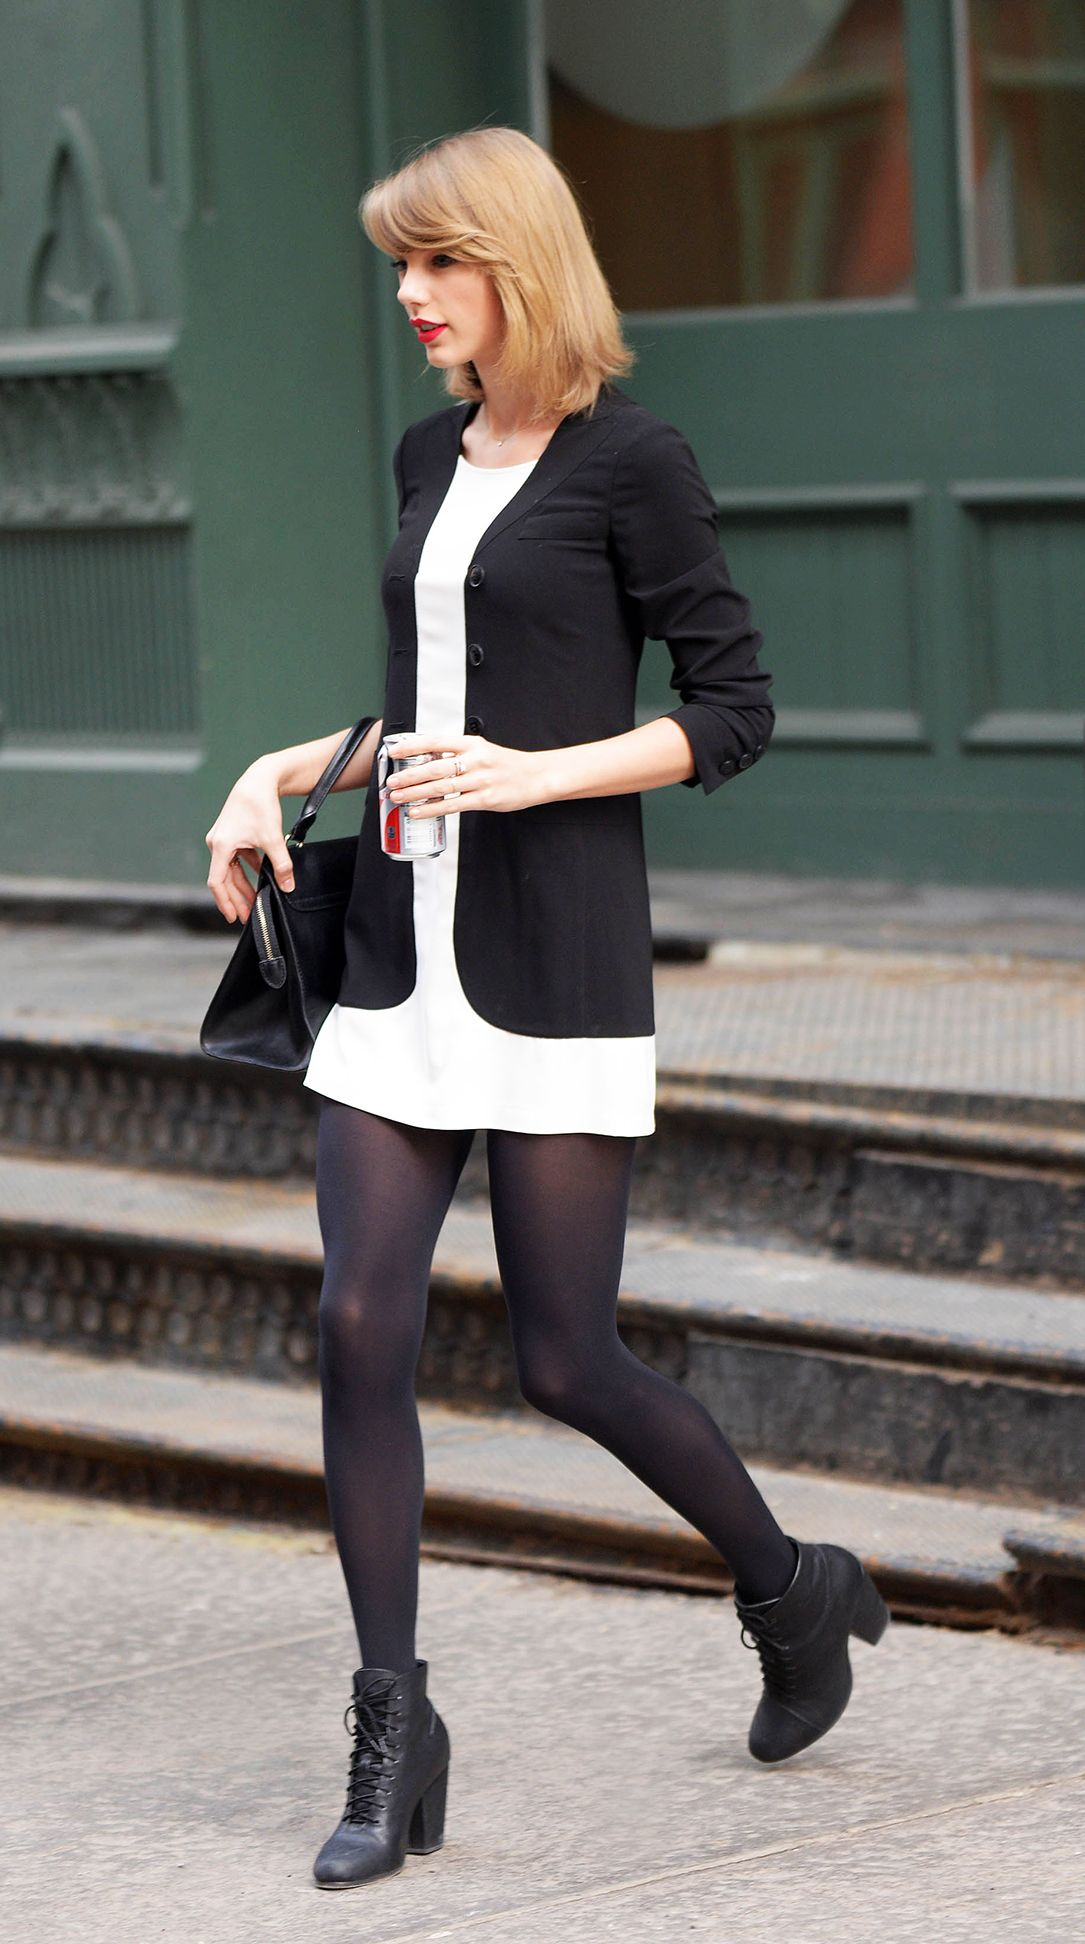 7 Days Of Ladylike Outfits Inspired By Taylor Swift Taylor Swift Street Style Ladylike Outfits Taylor Swift Style